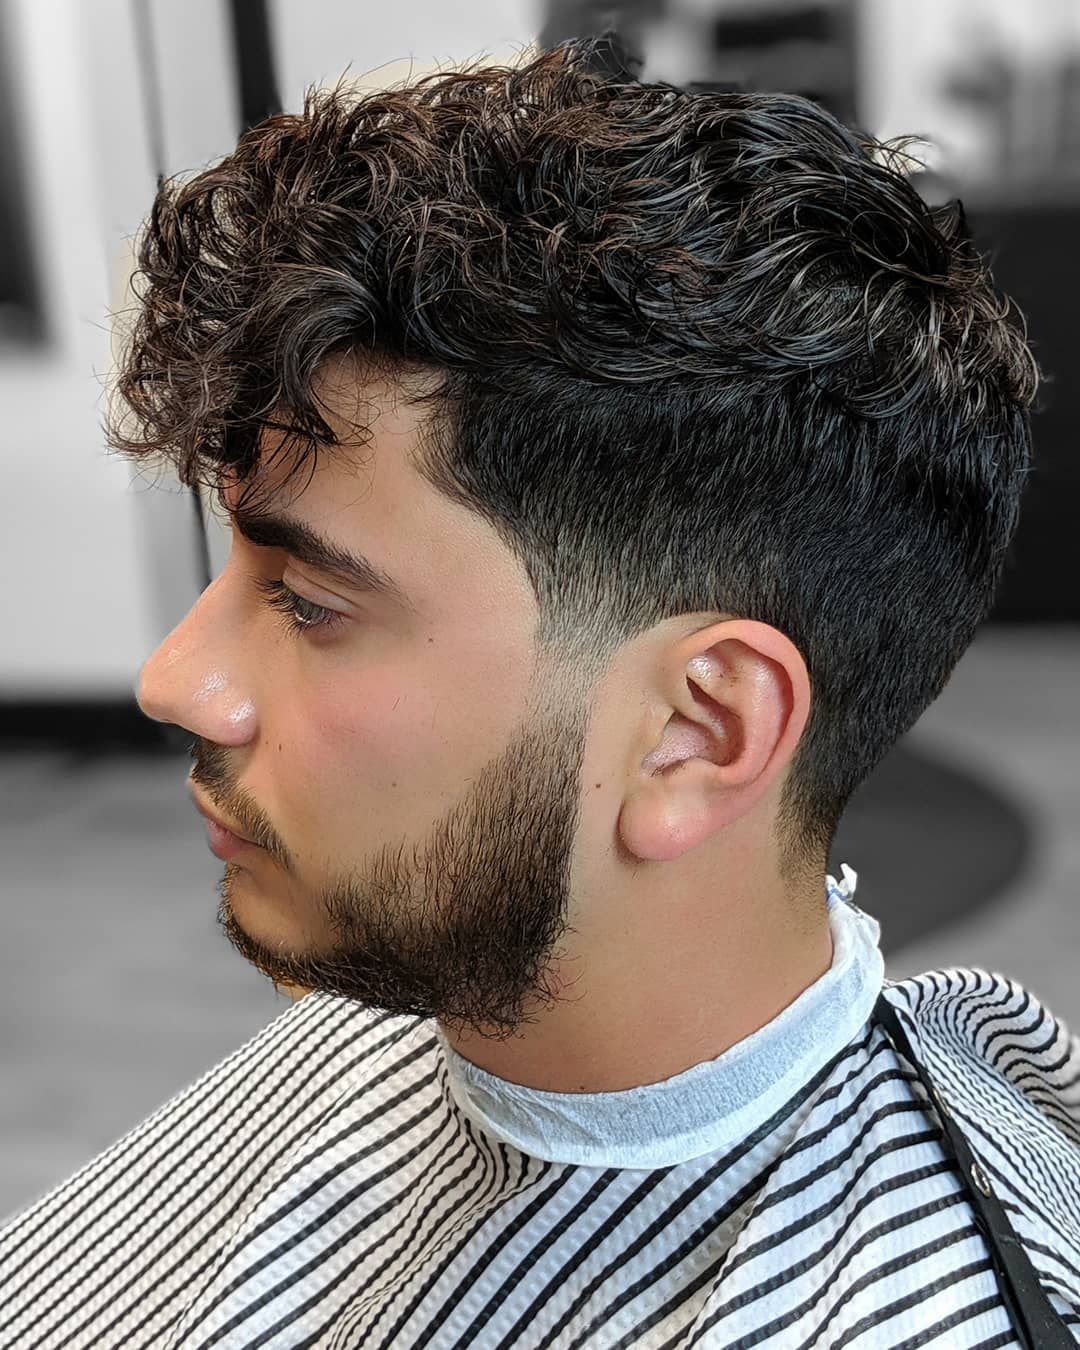 Pin On Men S Styles Hair Products Mobile Barber